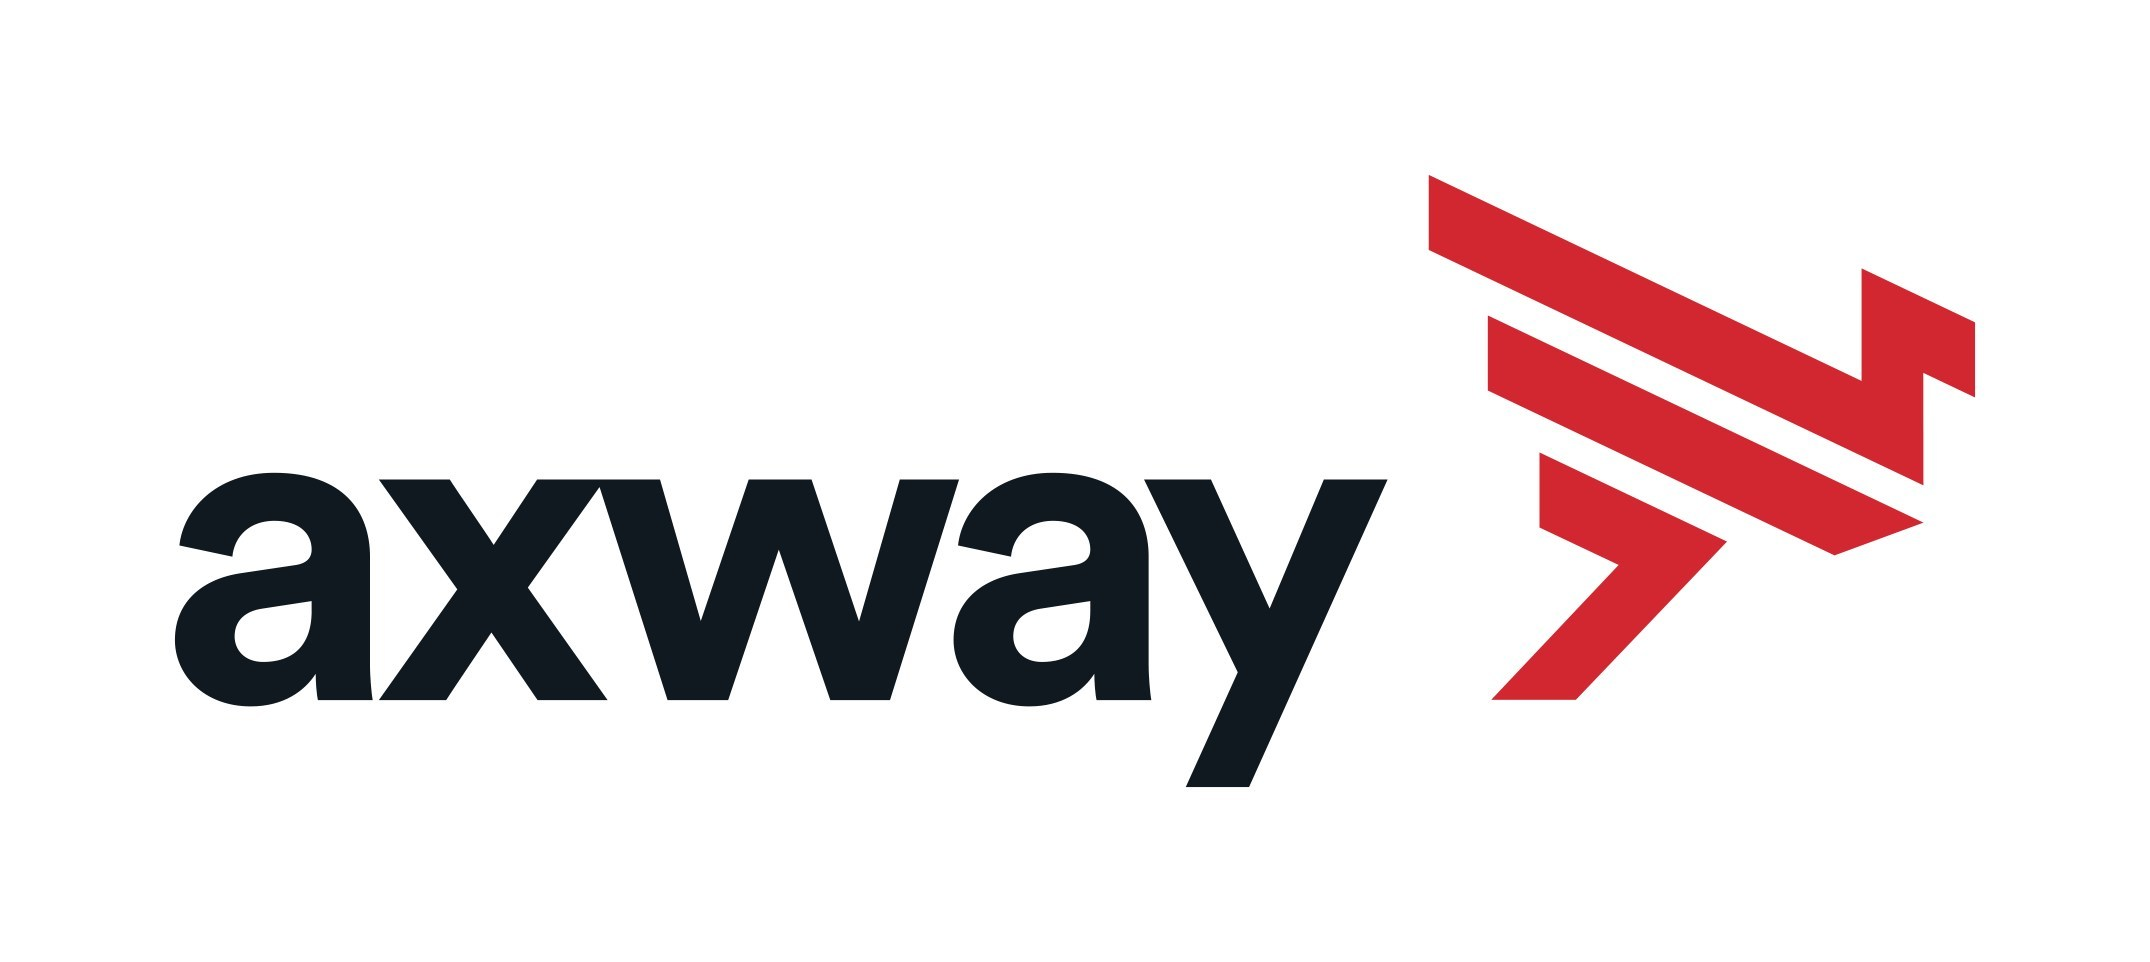 Axway Named a Leader in Gartner 2019 Magic Quadrant for Full Life Cycle API Management - RapidAPI